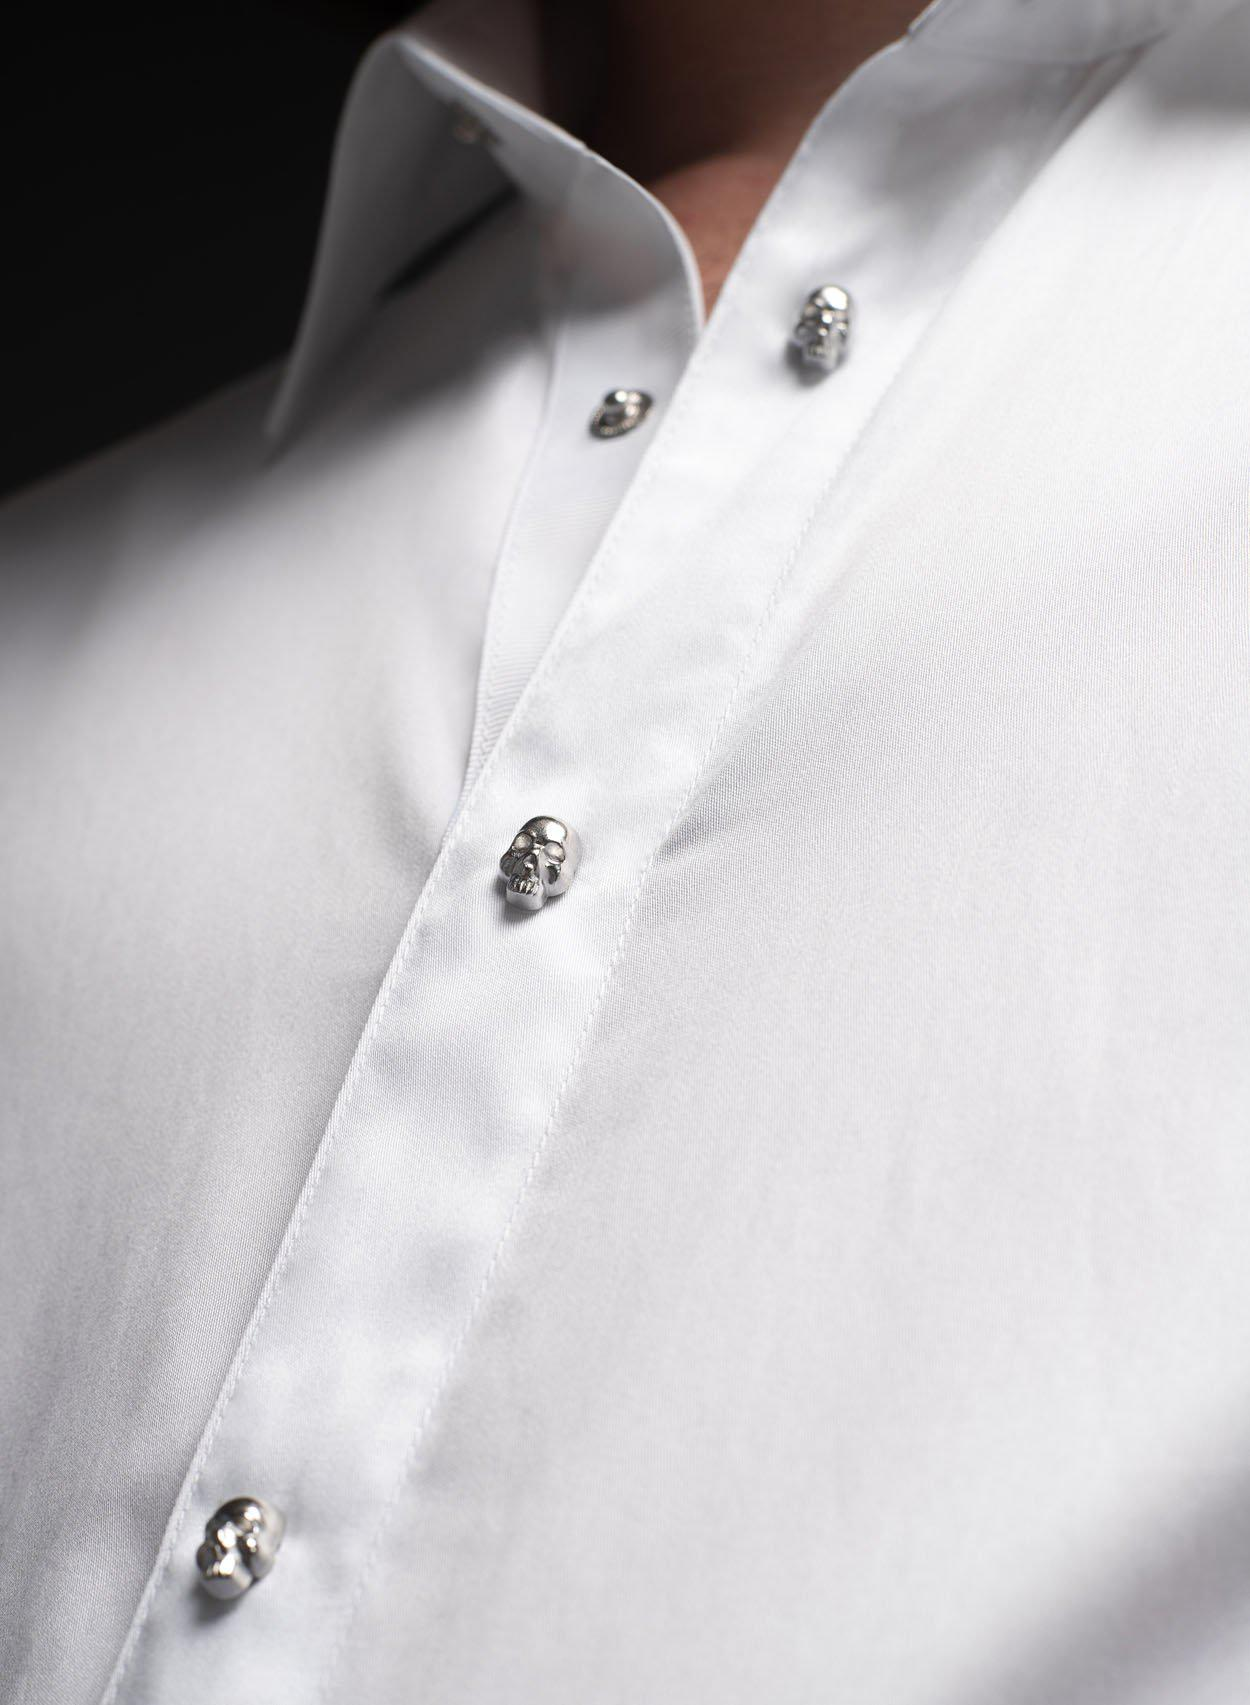 Monte Skull Button Cotton Shirt-PhixClothing.com